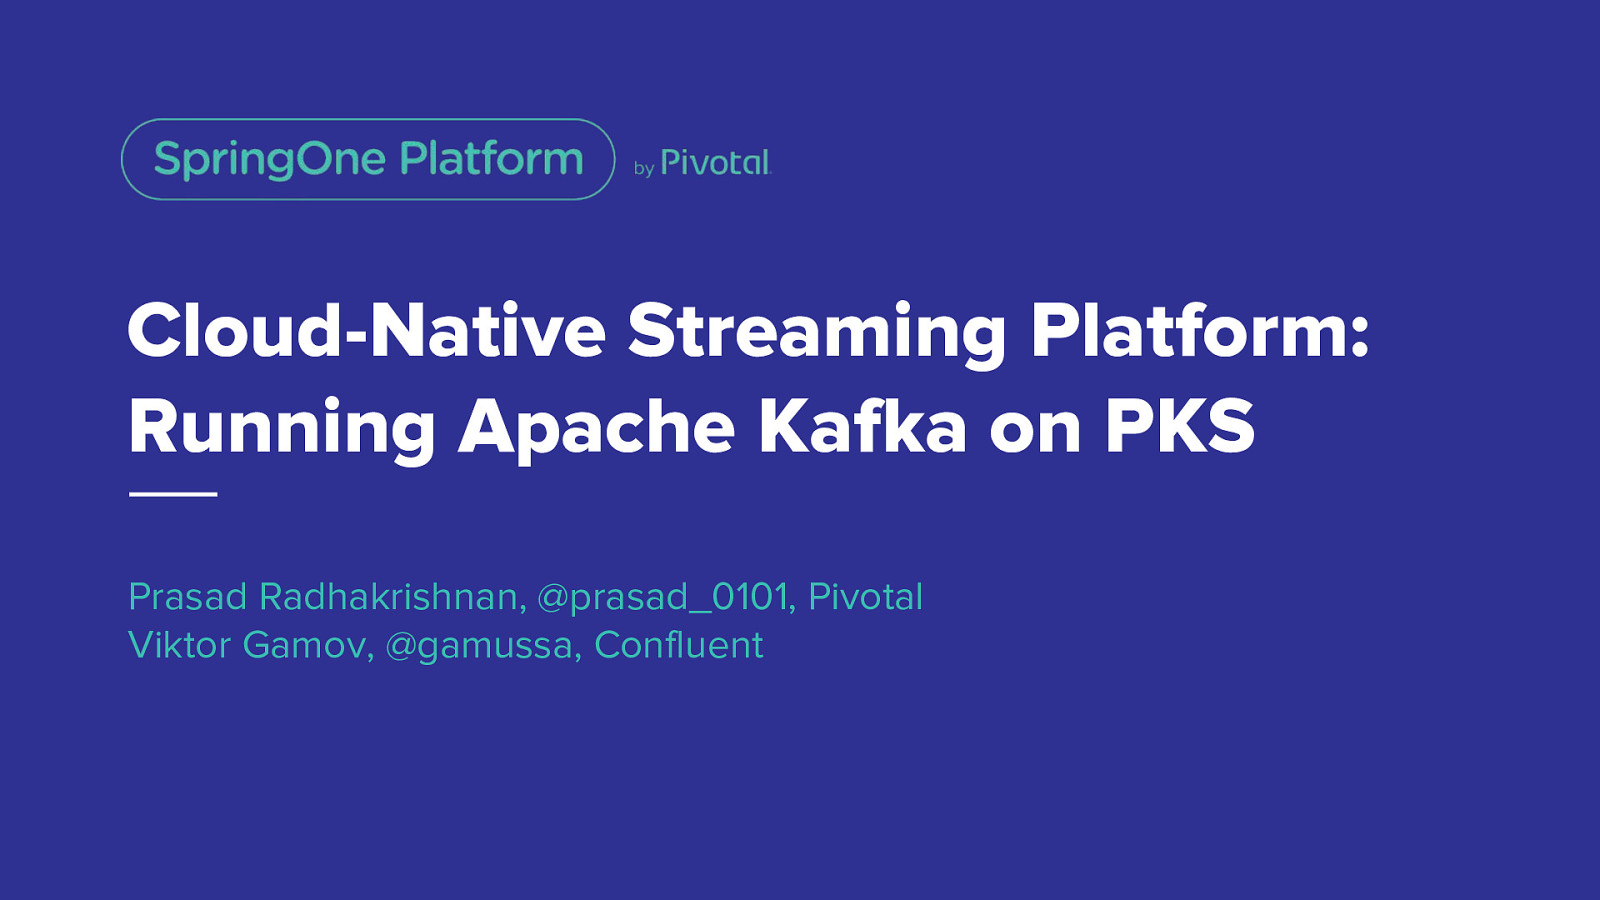 Cloud-Native Streaming Platform: Running Apache Kafka on PKS (Pivotal Container Service)